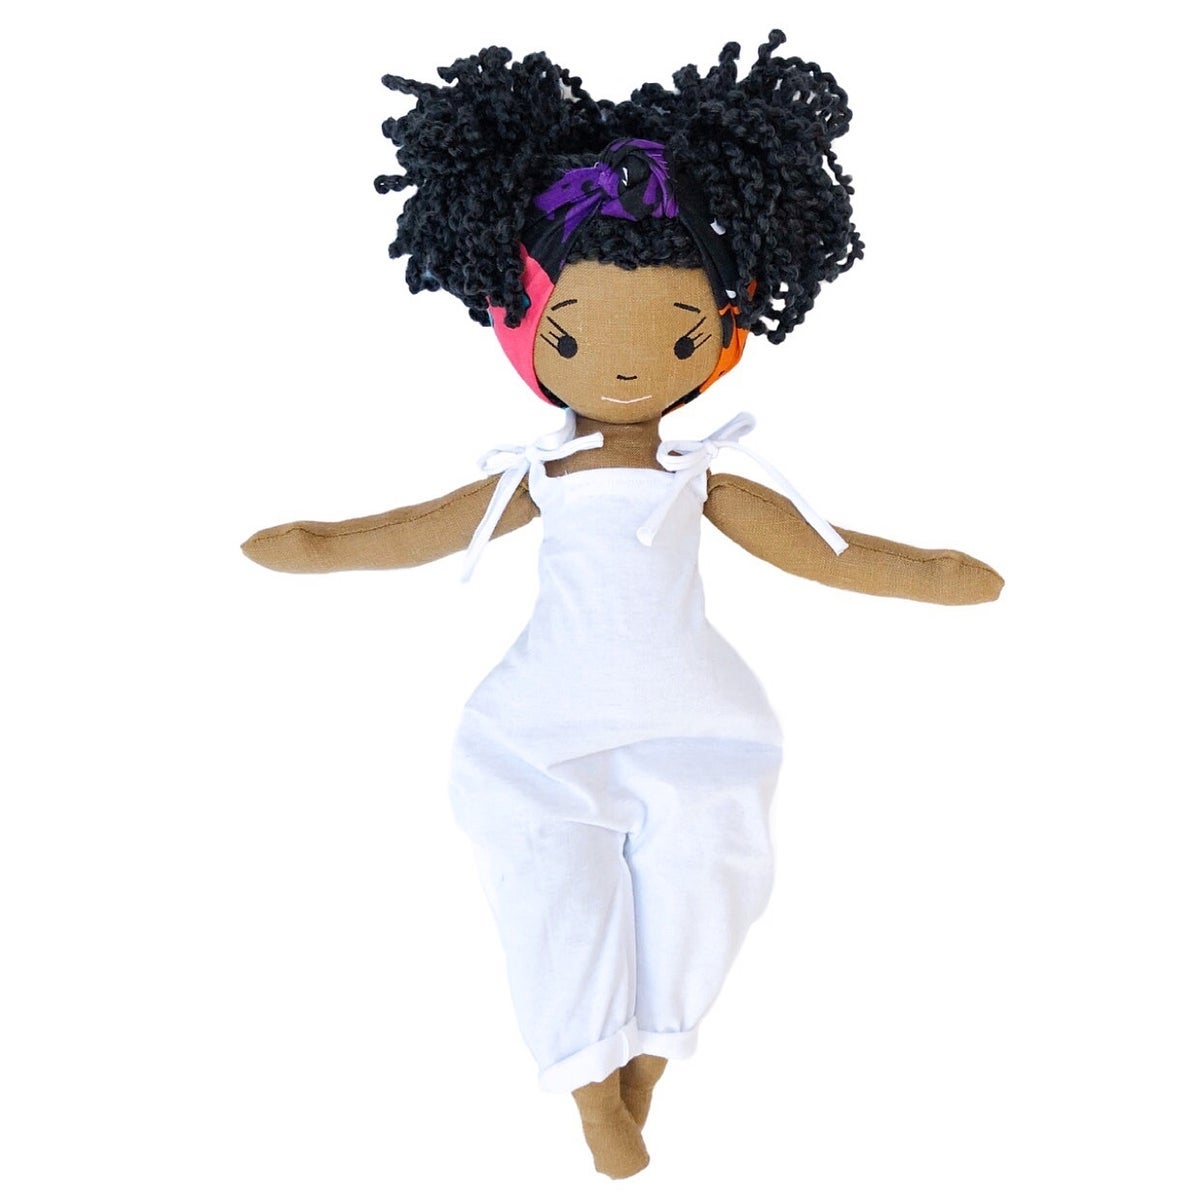 Marlo More to Love Handmade Linen Doll (AVAILABLE JULY 1 2021)